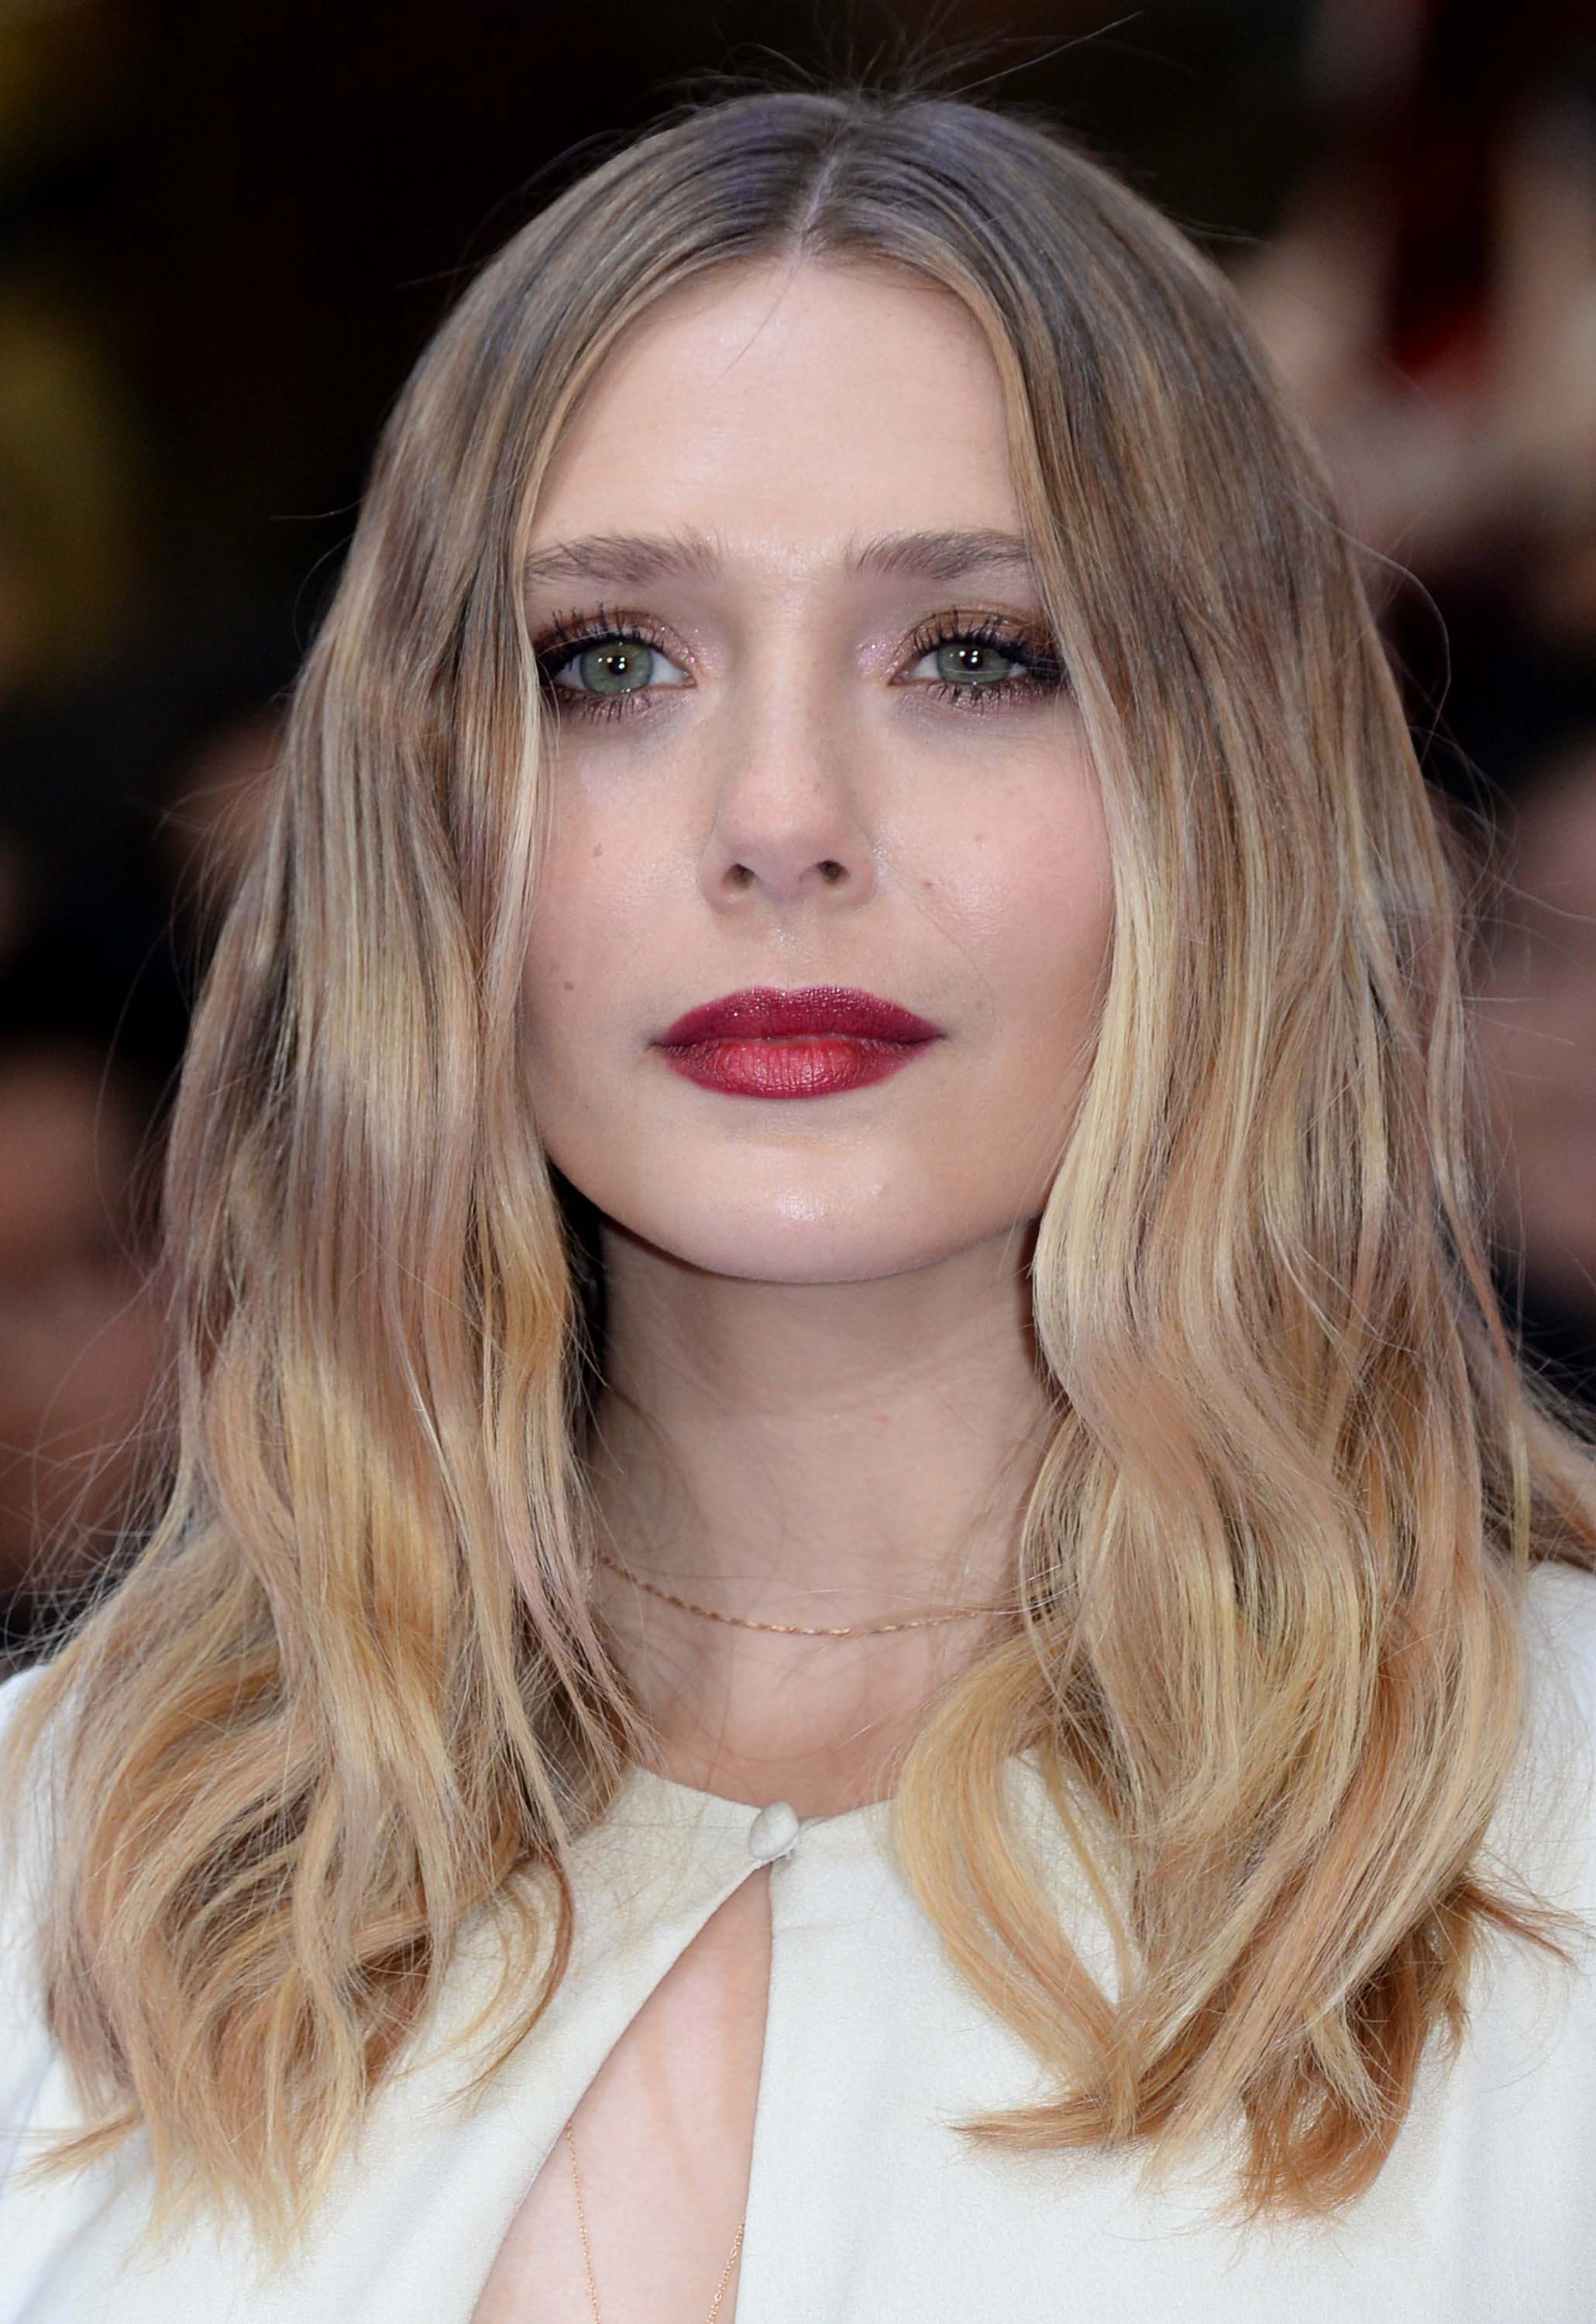 Medium-hairstyles-elizabeth-olsen